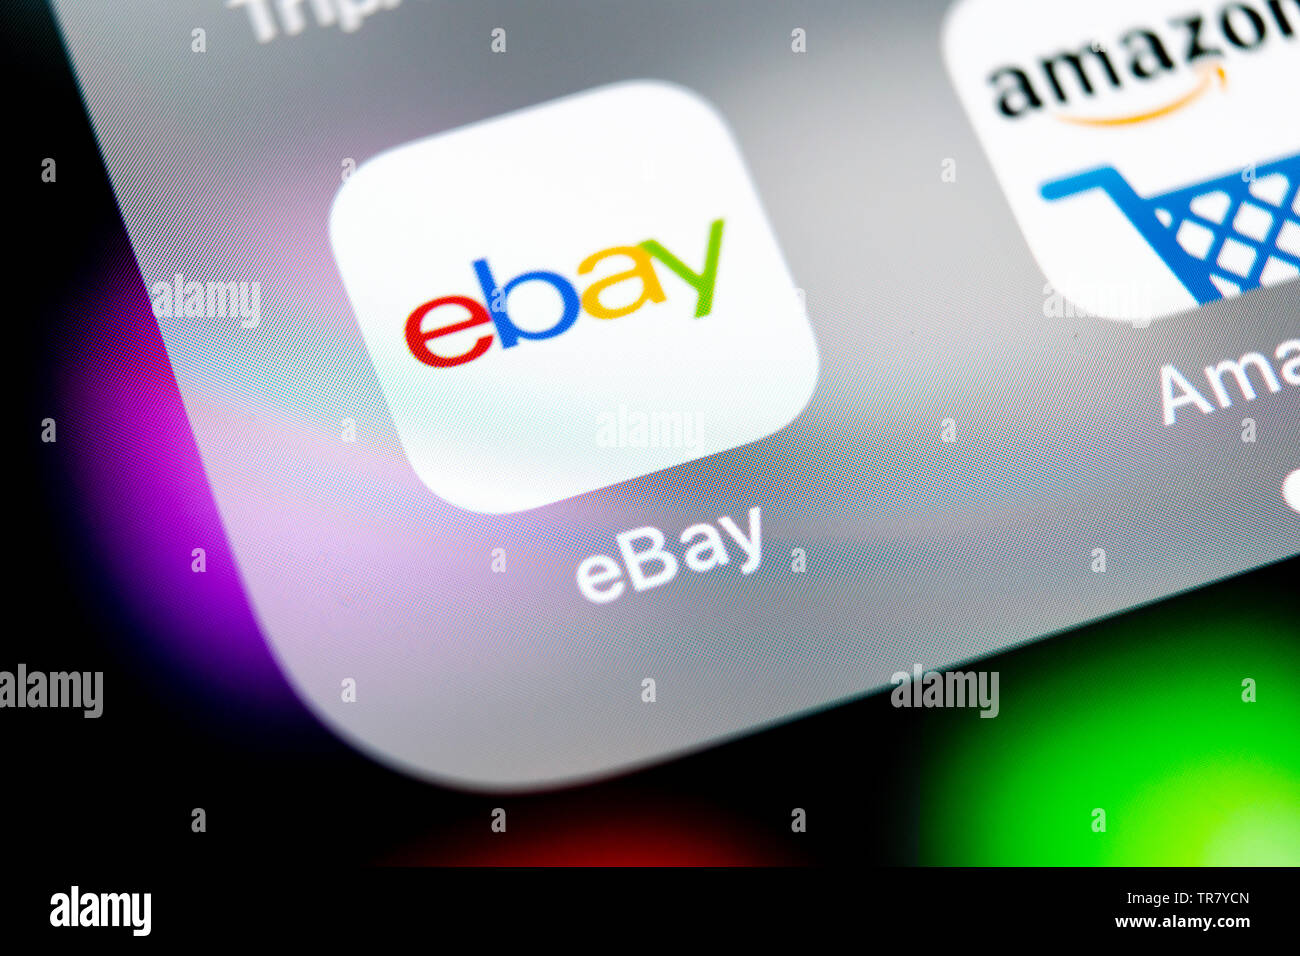 Sankt Petersburg Russia August 10 2018 Ebay Application Icon On Apple Iphone X Screen Close Up Ebay App Icon Ebay Com Is Largest Online Auction Stock Photo Alamy